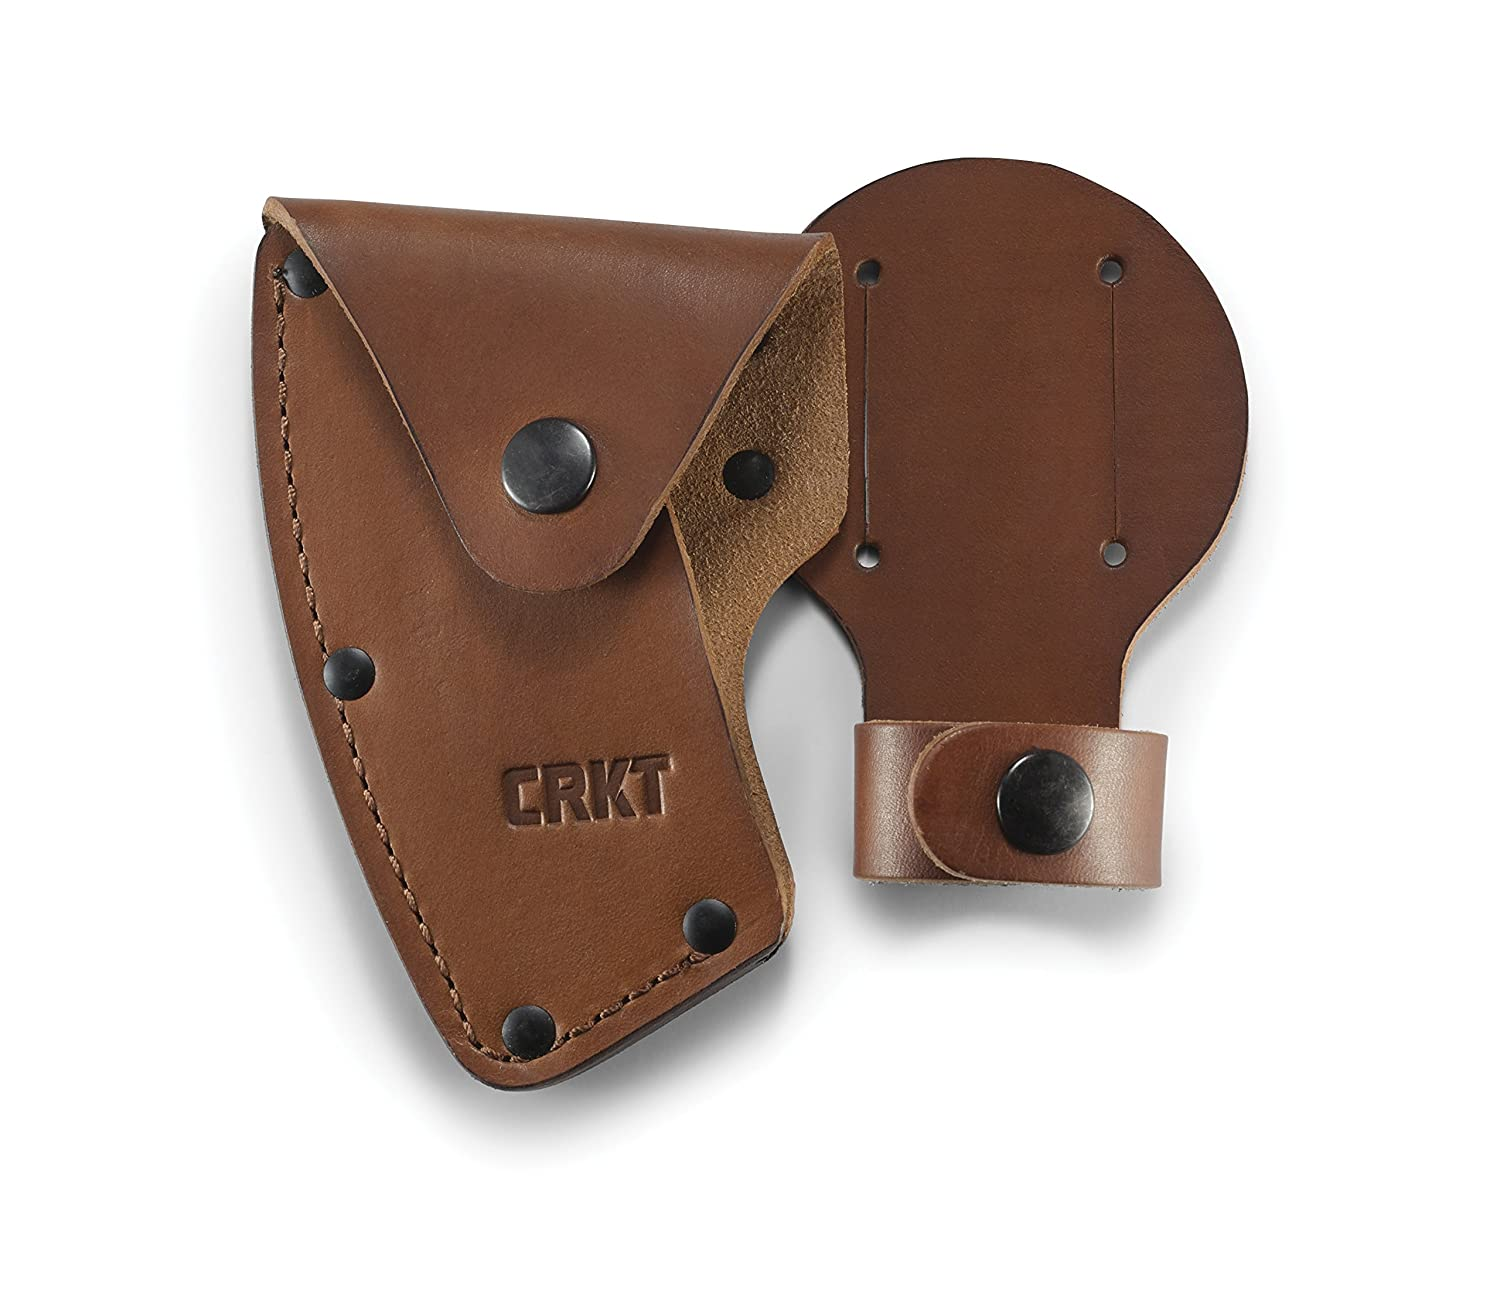 CRKT Freyr Axe Sheath Full Grained Leather Multiple Snaps Belt Loops for Secure Carry of Axe for Use with CRKT 2746 D2746